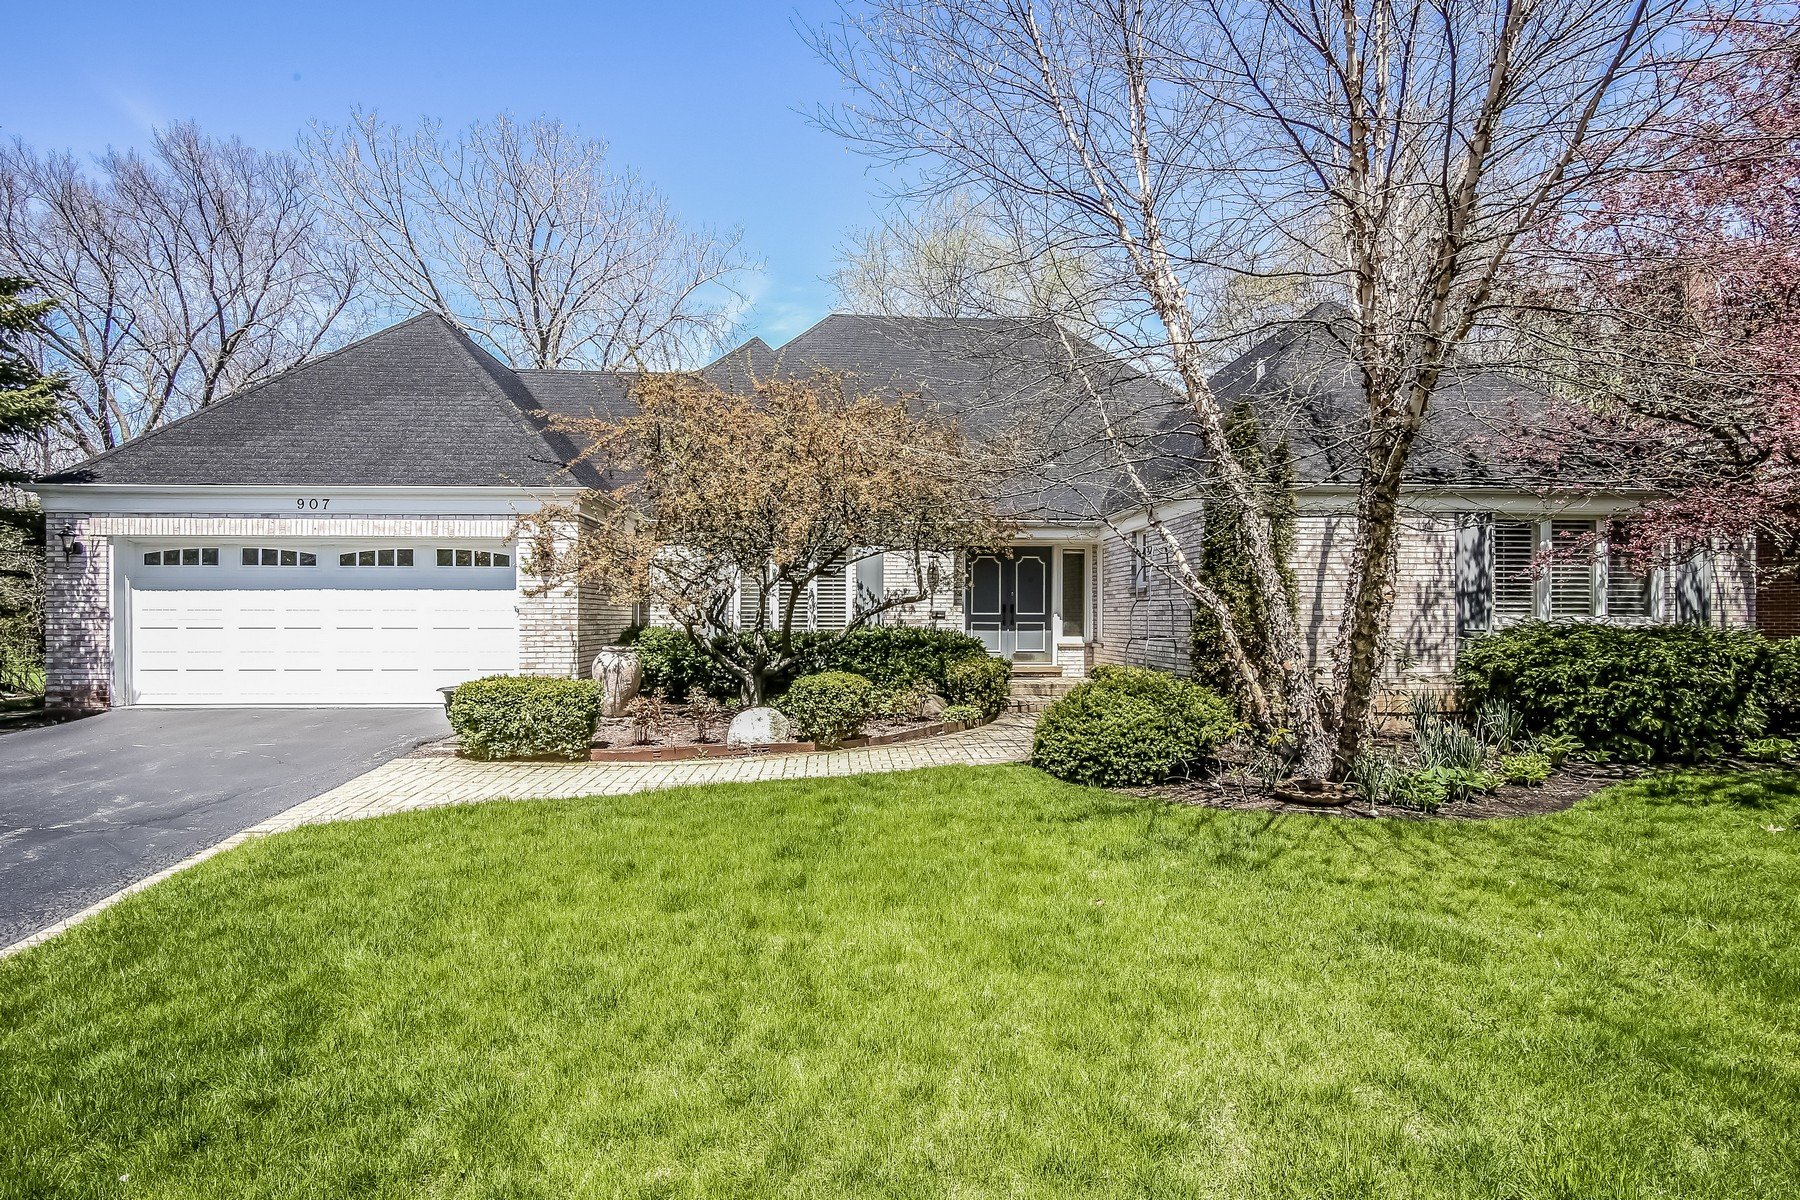 Maison unifamiliale pour l Vente à Beautiful and Gracious Highland Park Home 907 Dryden Lane Highland Park, Illinois, 60035 États-Unis